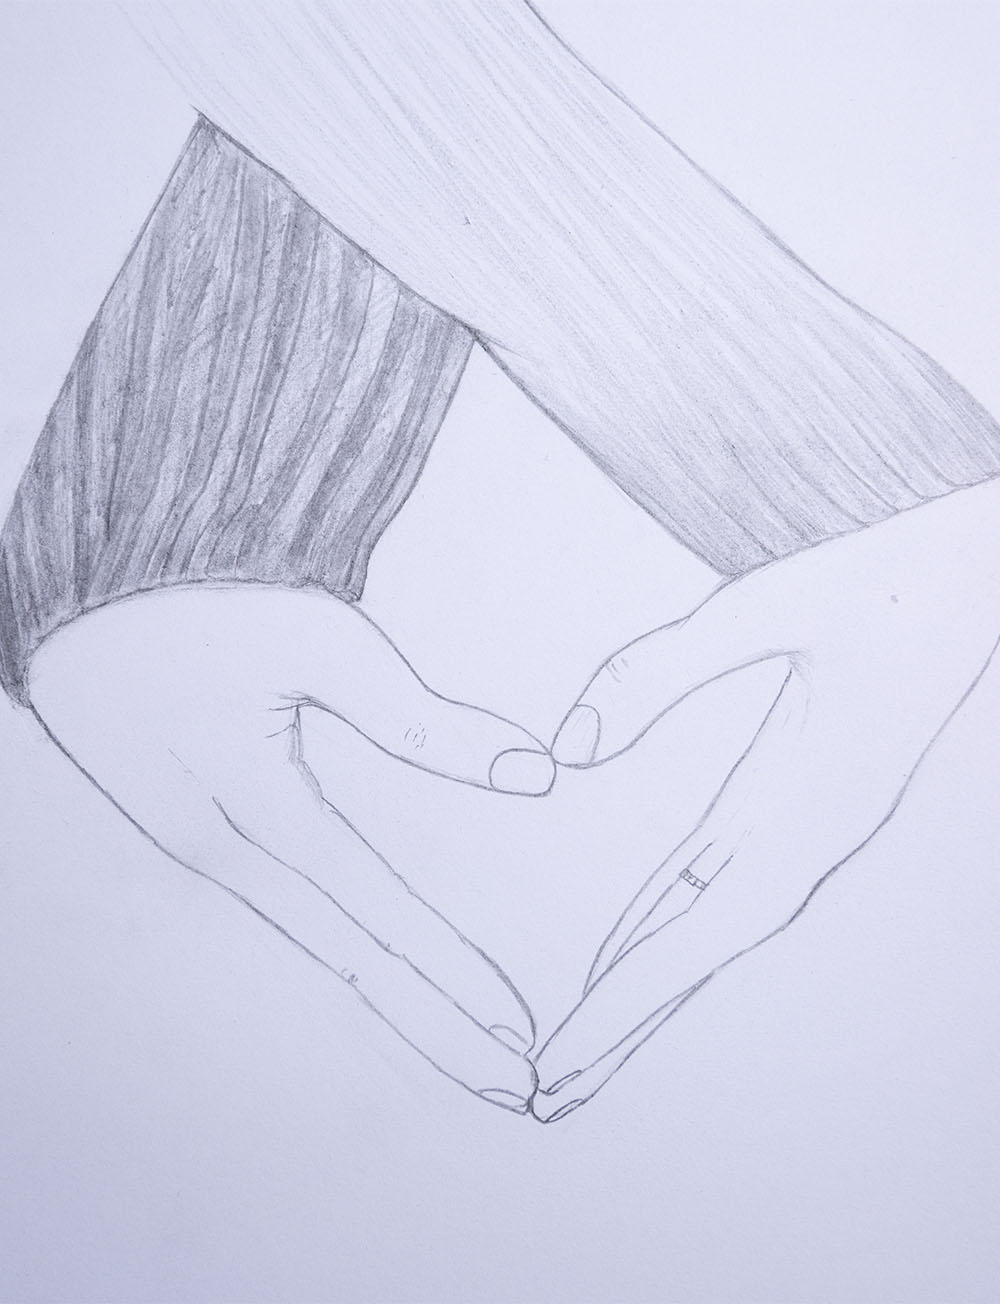 how to draw love heart hands